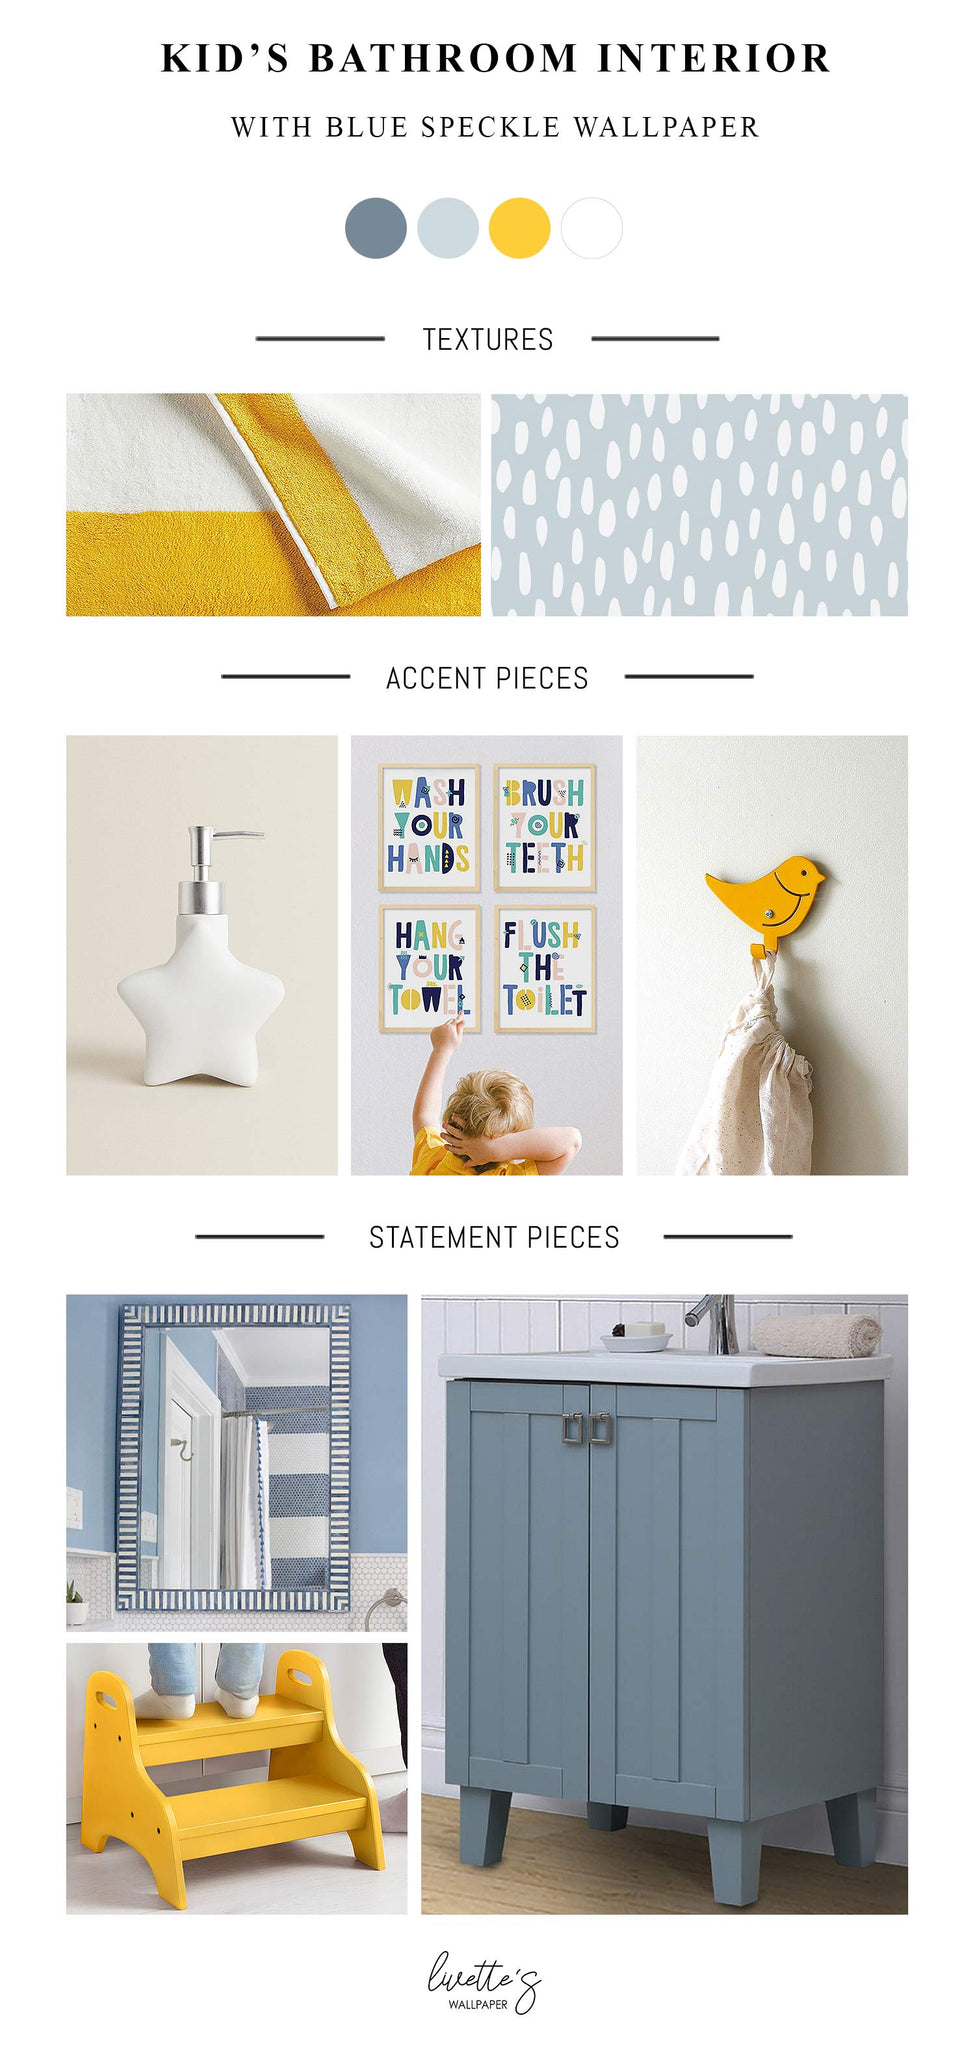 blue and yellow color scheme kid's bathroom interior inspiration